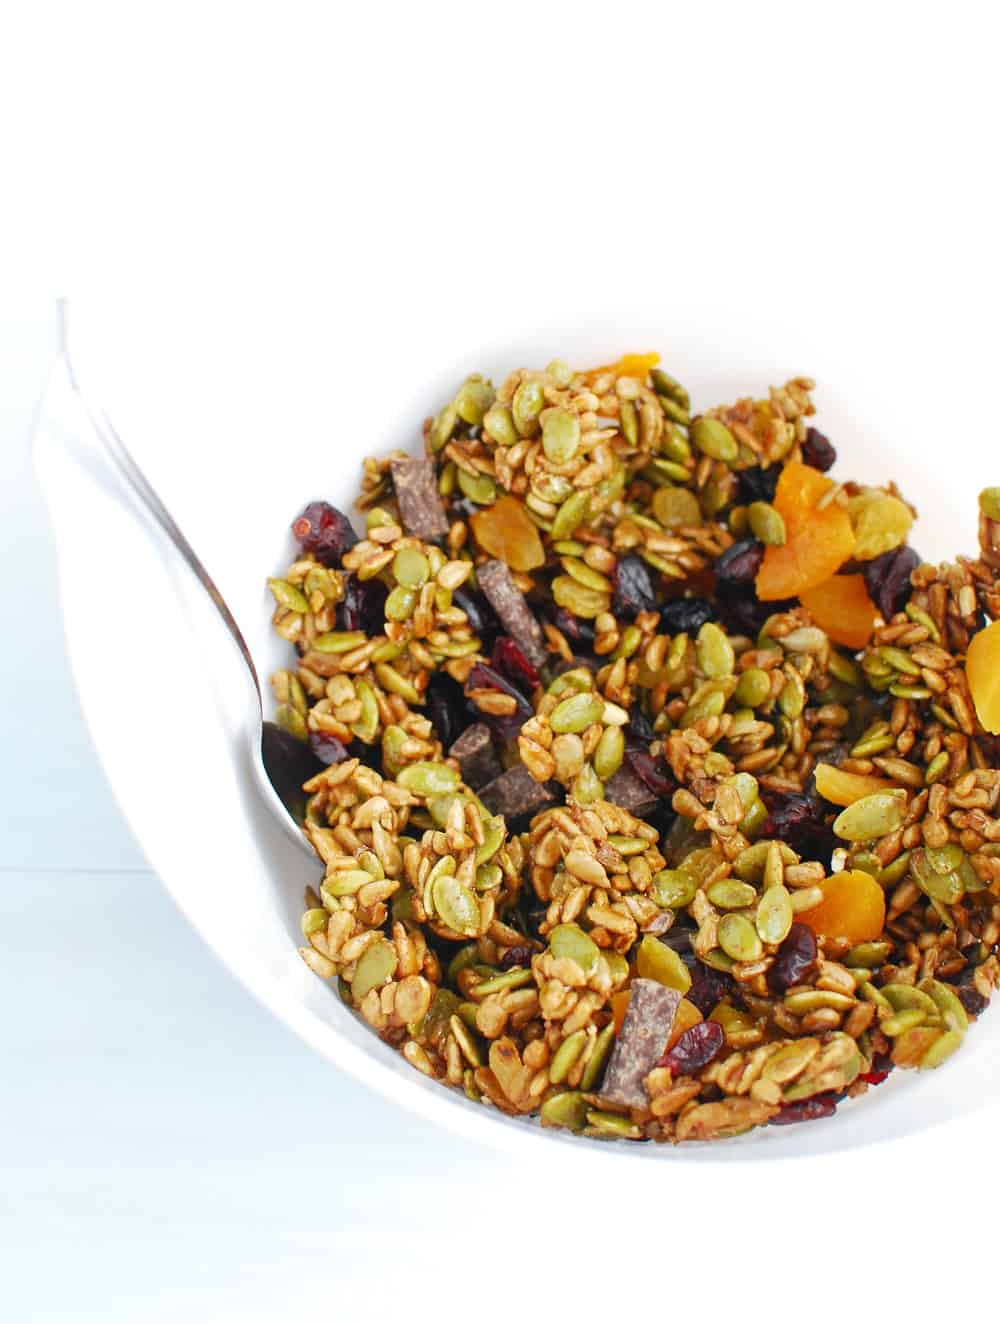 A white bowl full of nut free trail mix